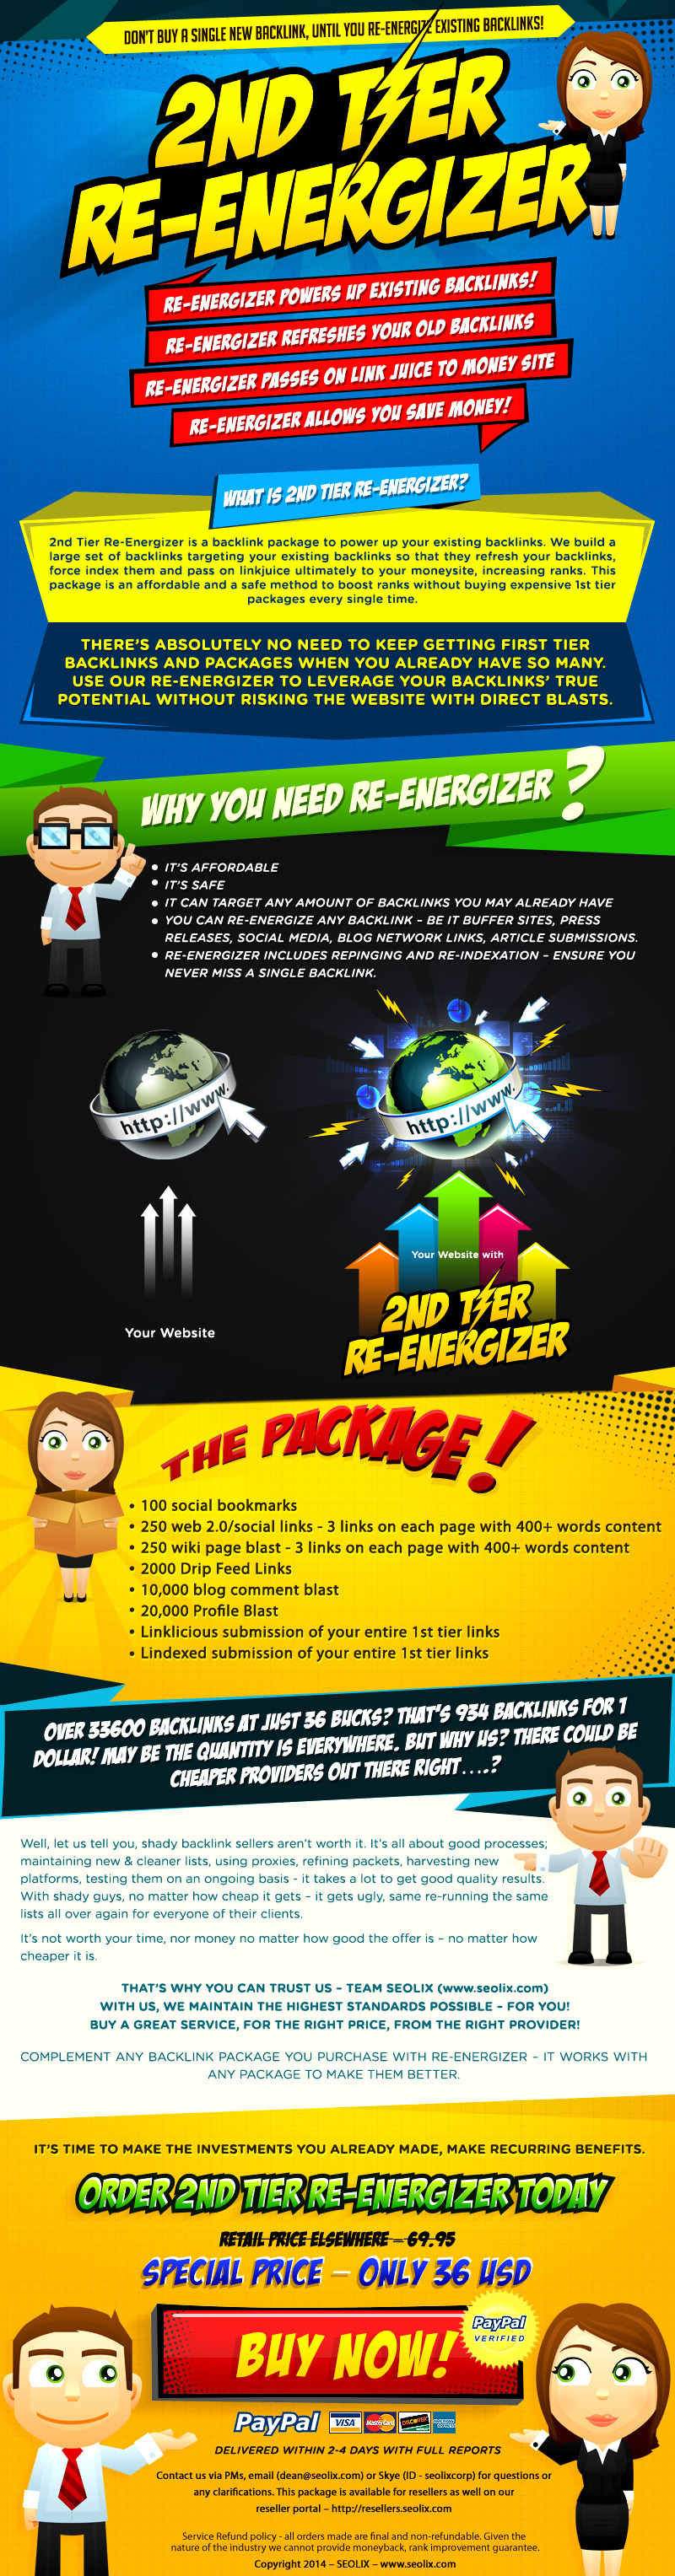 2ndtier re-energizer